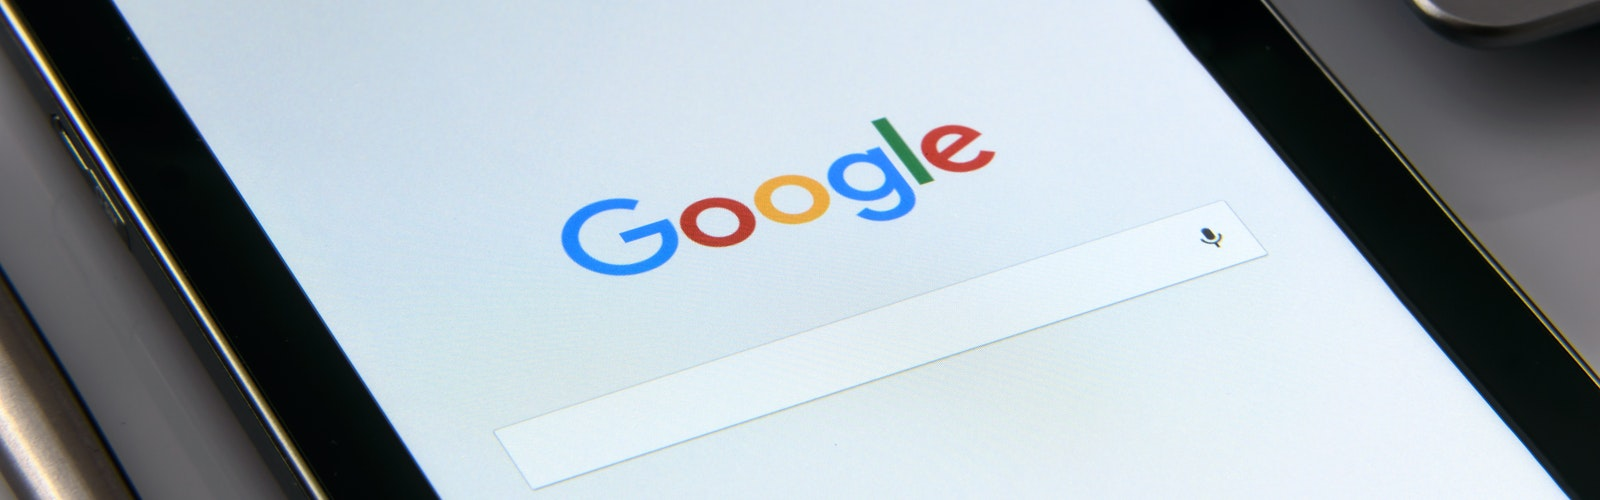 Google scheduled to complete move to Mobile First Index in March